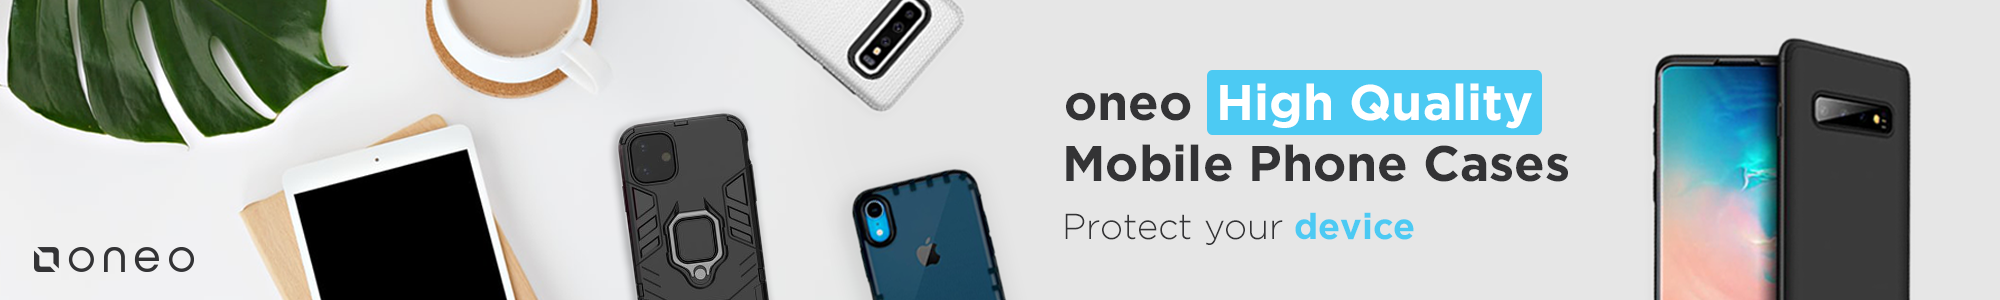 oneo High Quality Mobile Phone Cases! Protect Your Device